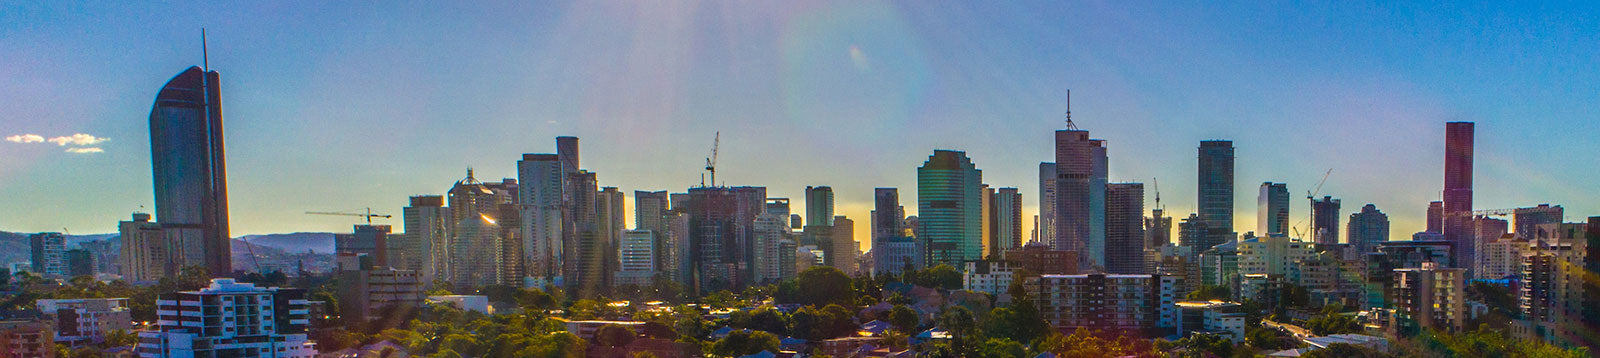 aerial imagery by my drones brisbane city skyline with high rise buildings droneography